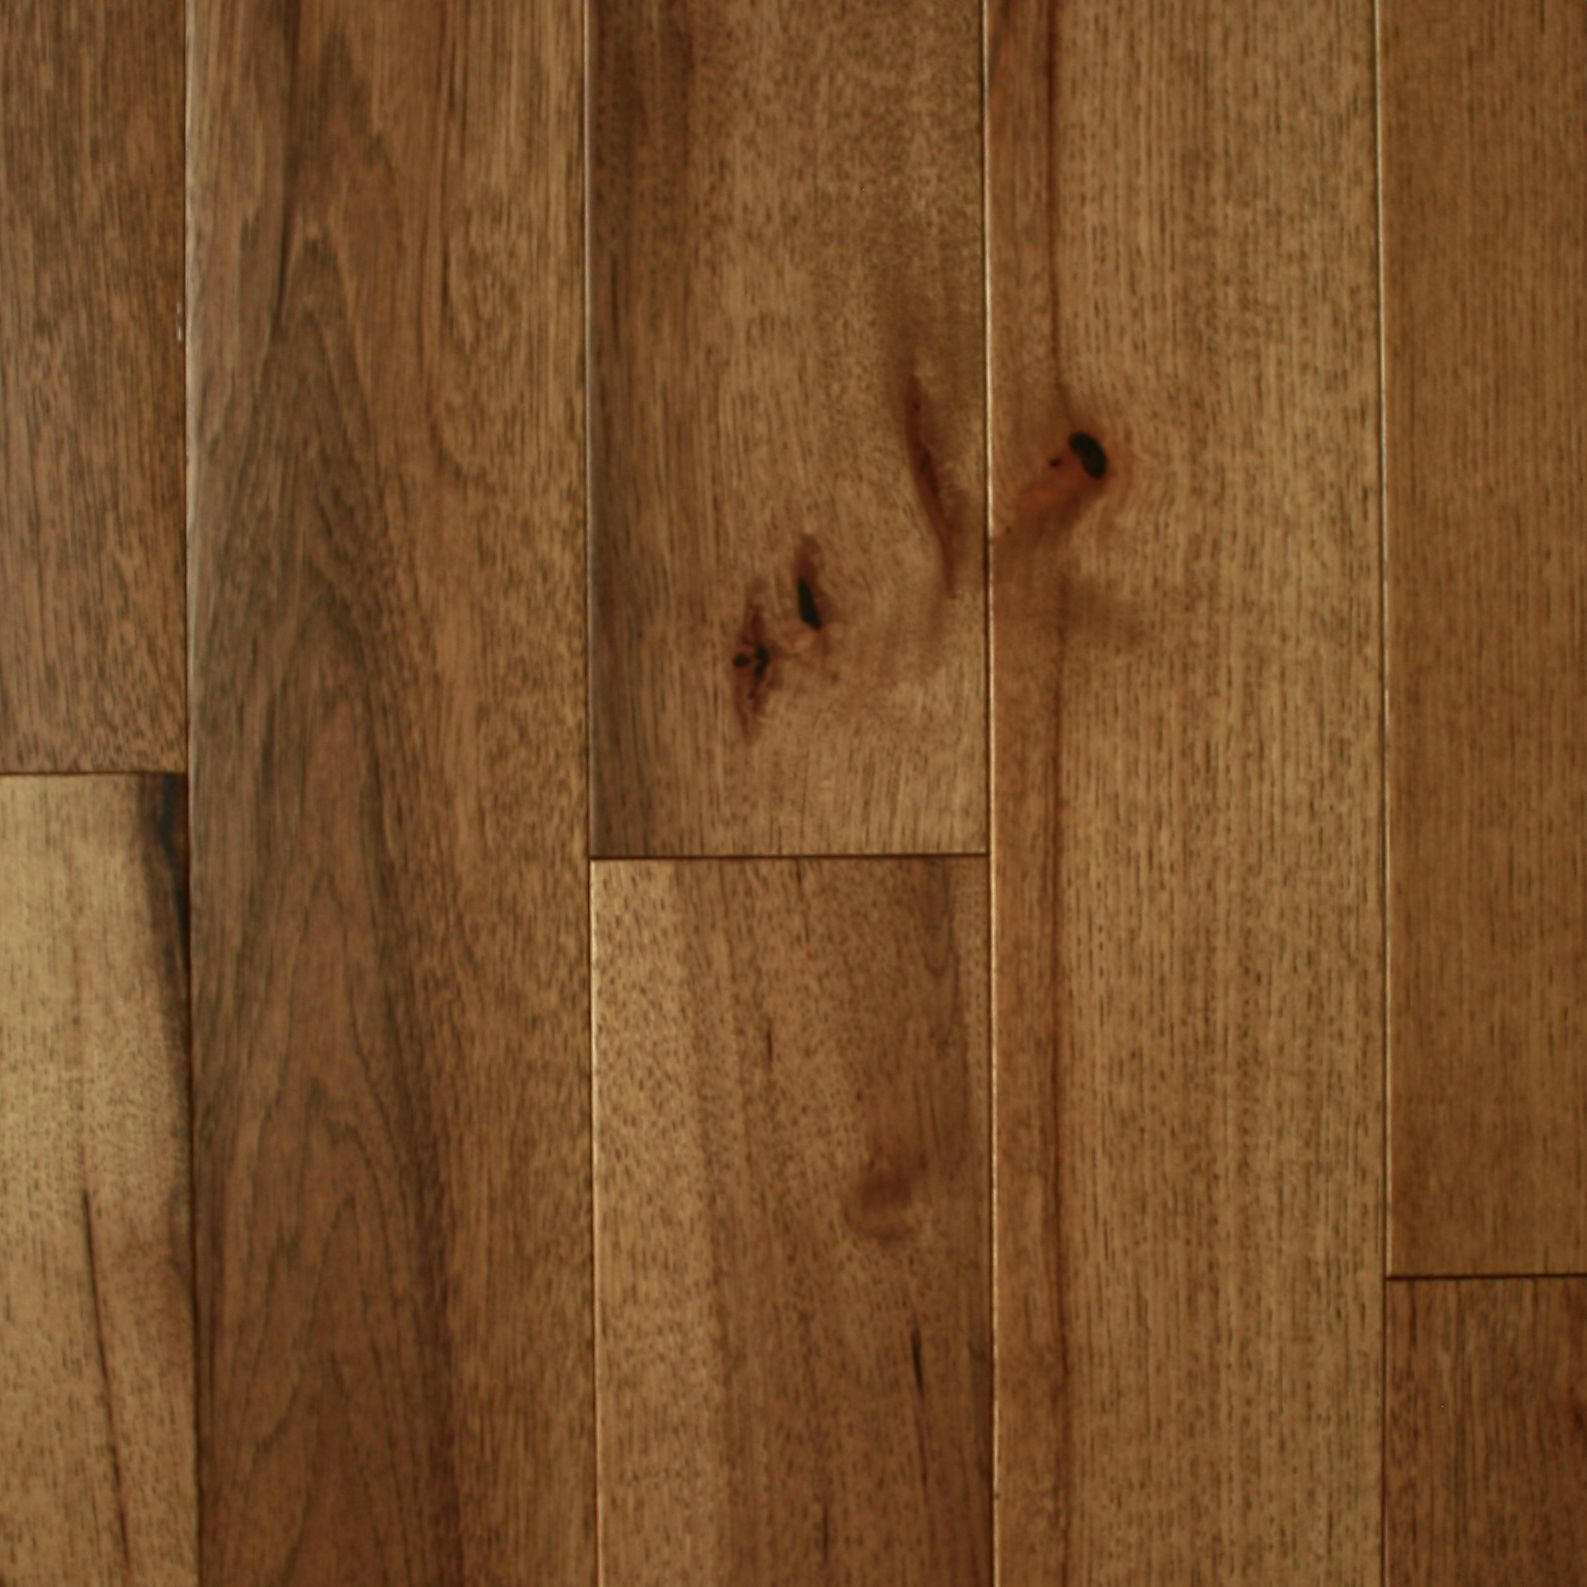 261 Sm S Hickory Hardwood Flooring Is Both Beautiful And Timeless We A